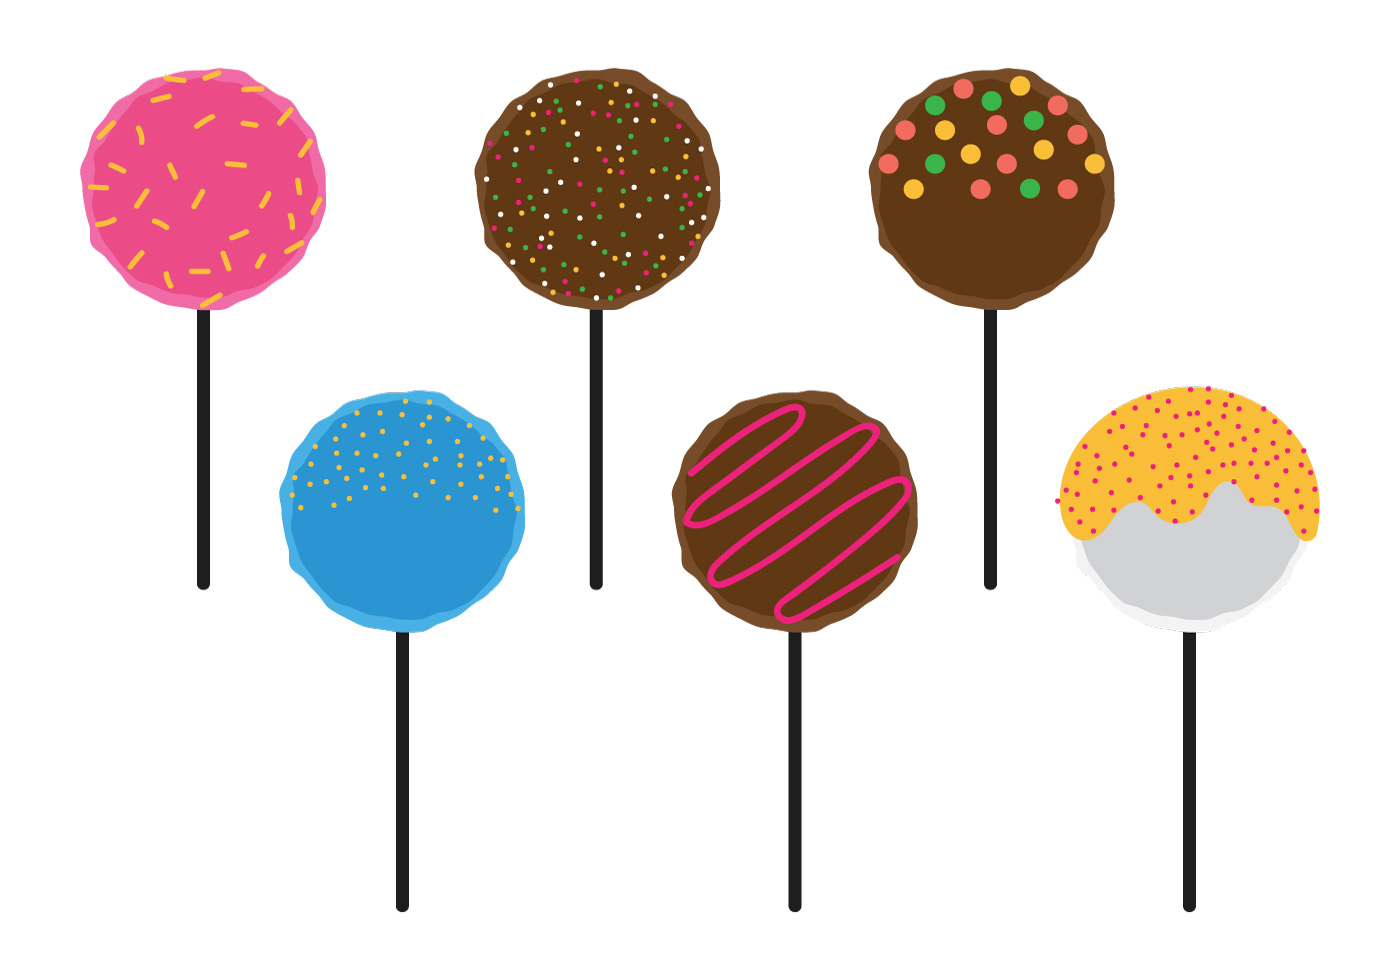 cake pops with topping download free vector art  stock slice of cake clipart free slice of cake clipart free